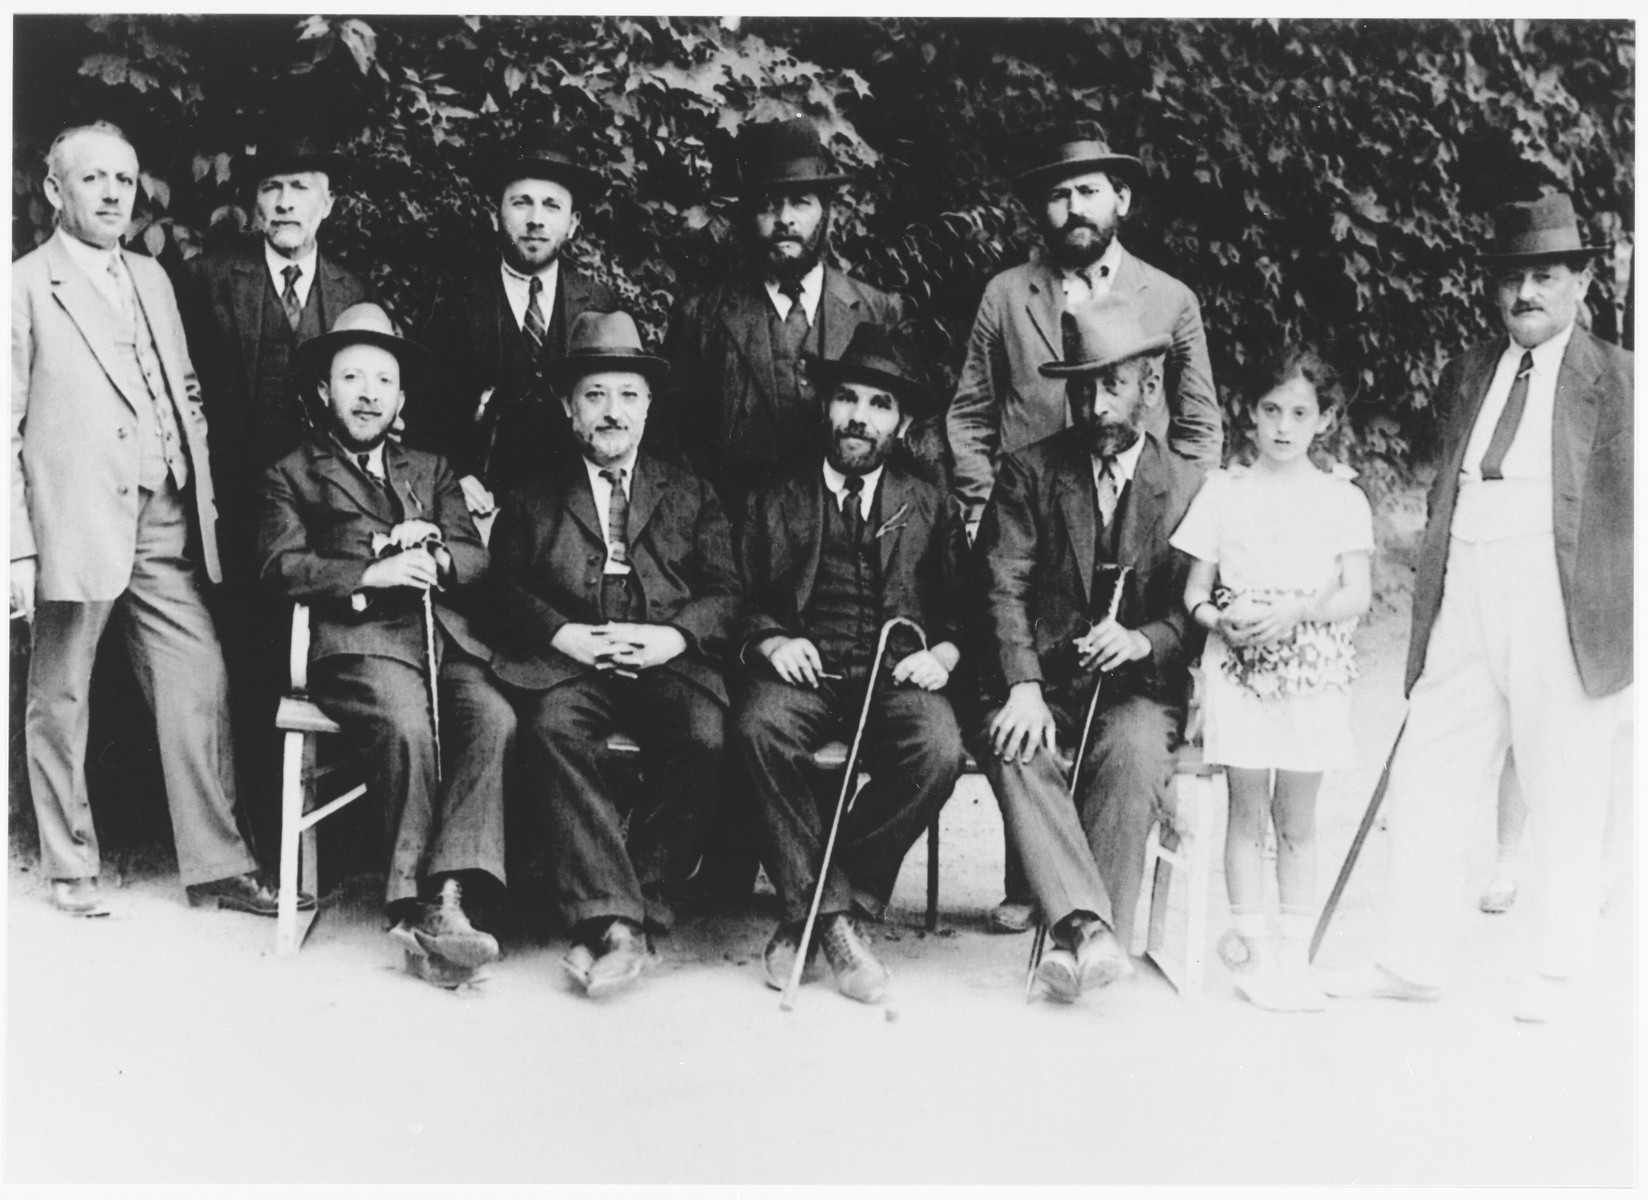 Leaders of the Sighet Jewish community.  Those pictured include Mr. Hershkovich (seated far left), Mr. Klein (seated second from left), Mr. Yacobovich (standing far right) and Mr. Jahan (standing second row, right).